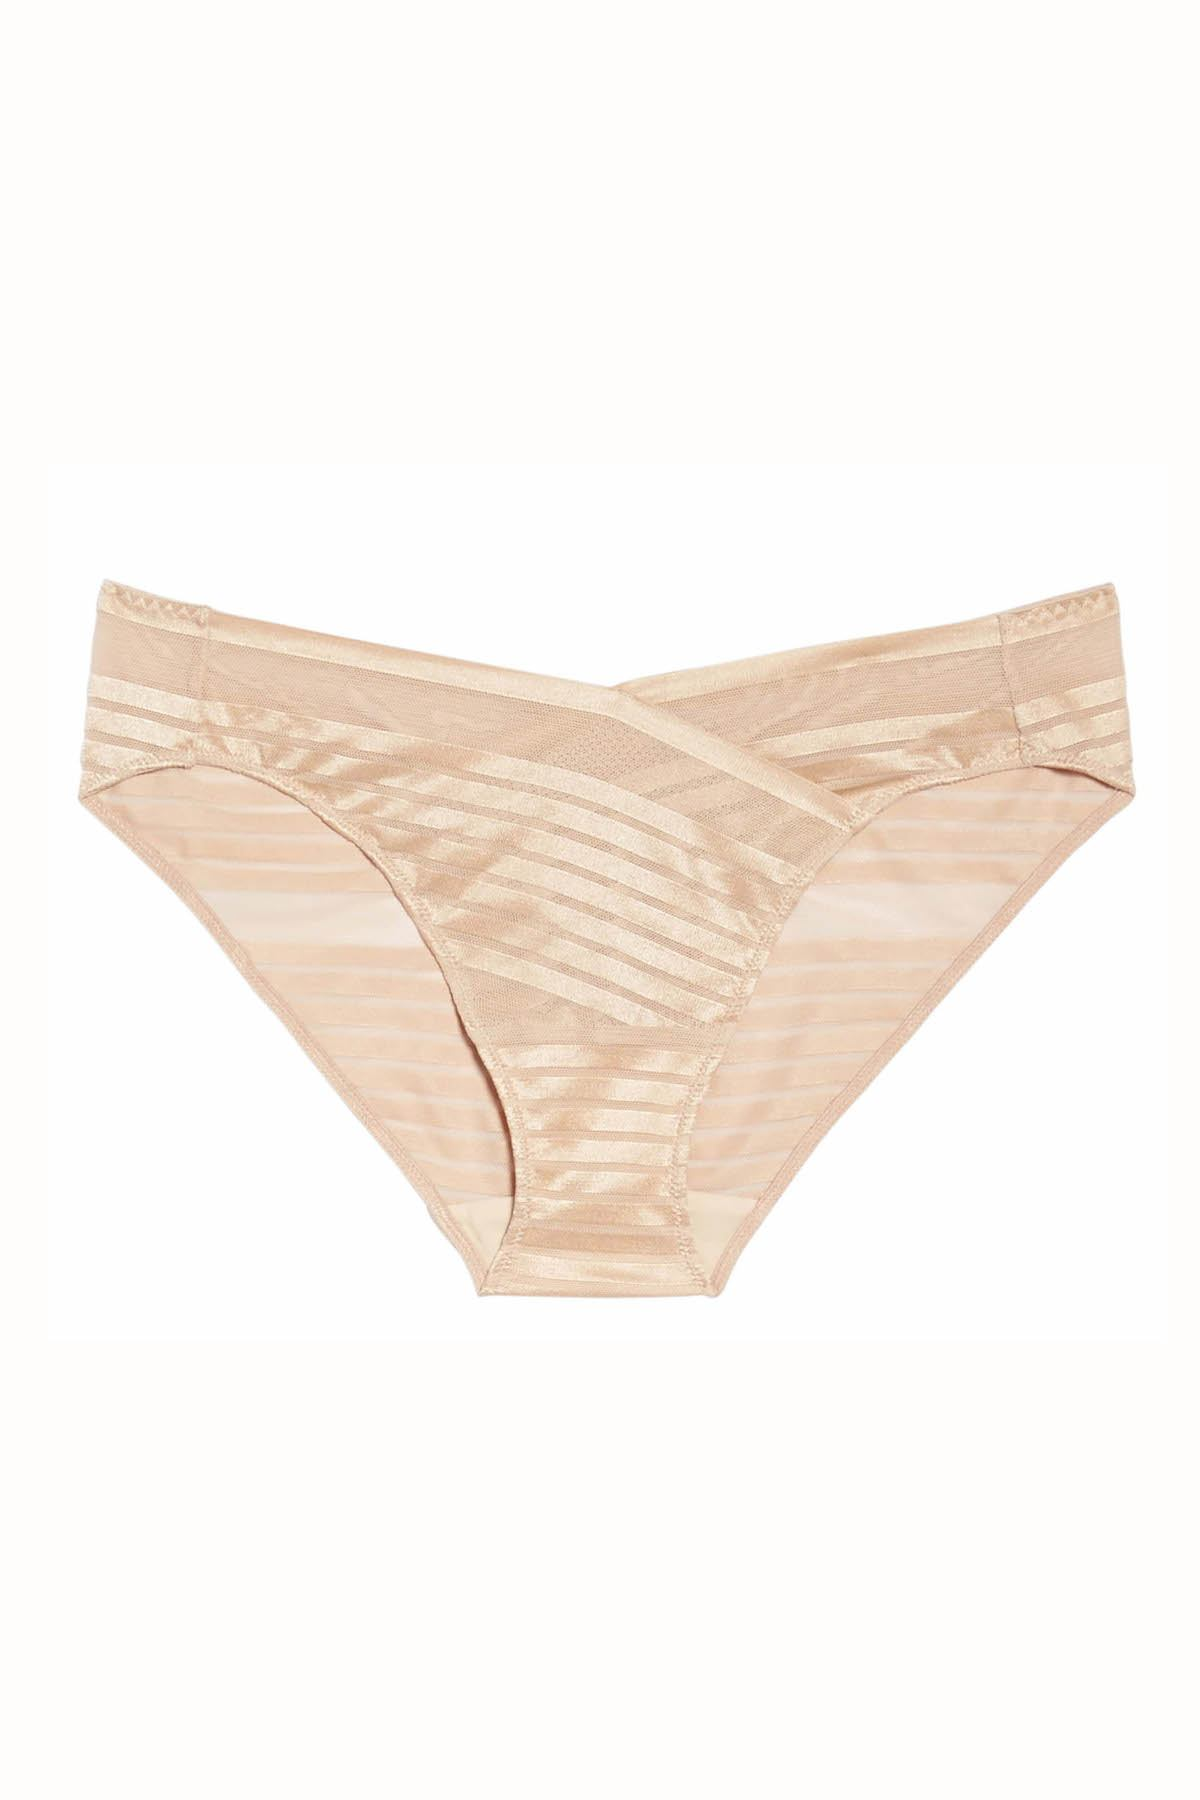 Natori Cosmetic-Beige Precision Low-Rise Stretch-Mesh Bikini Brief